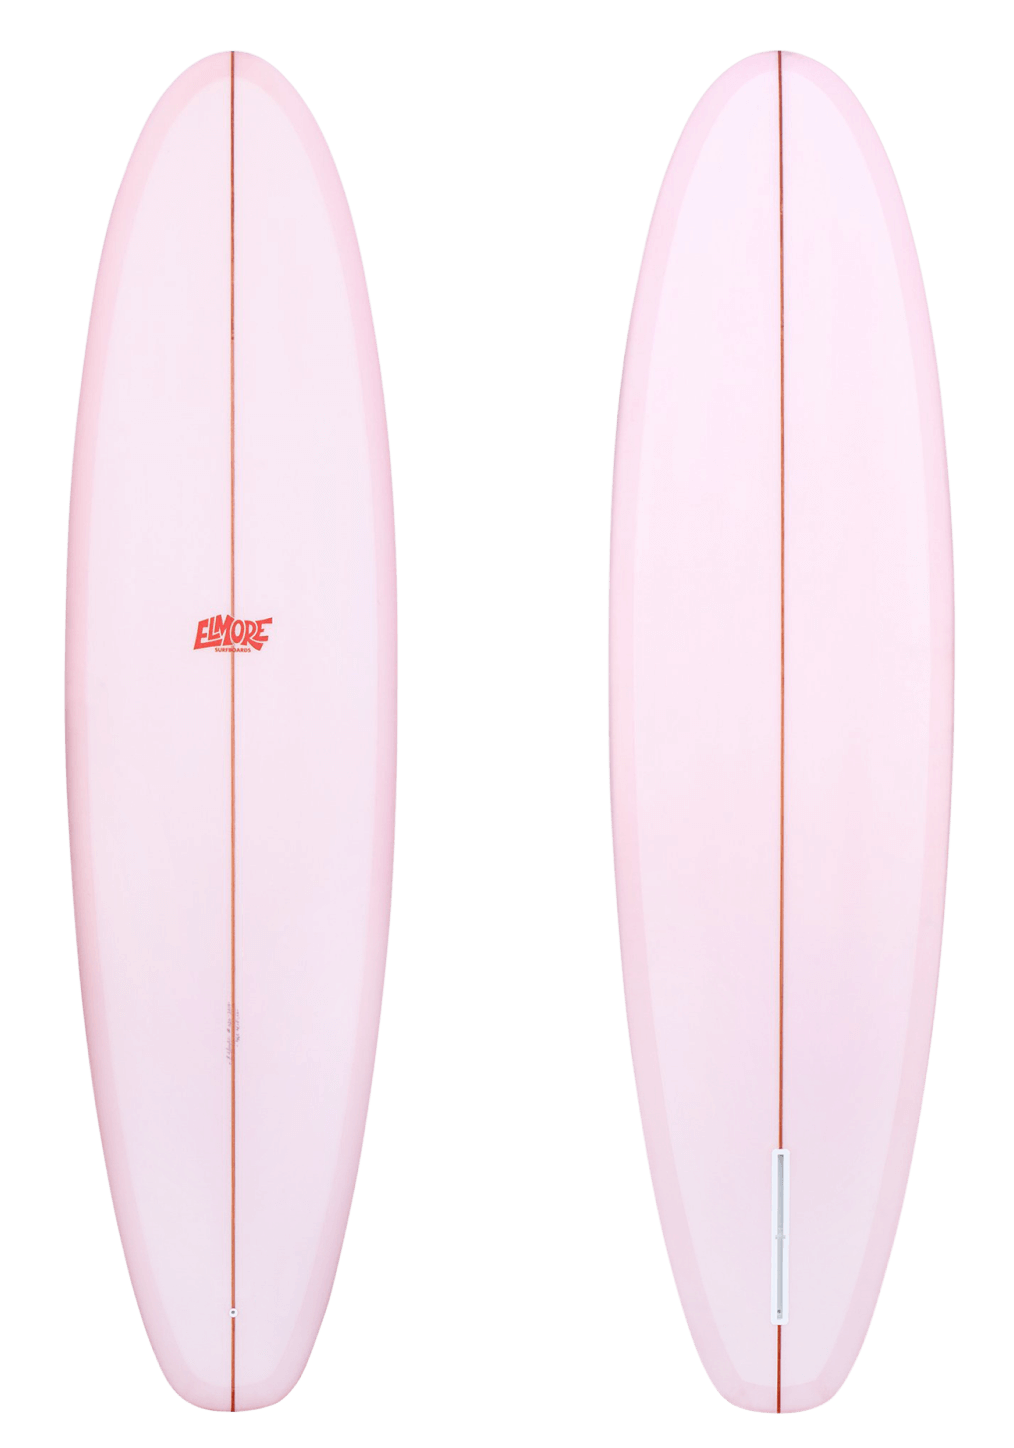 Mollusk 7 1 Elmore Pusher Surfboard